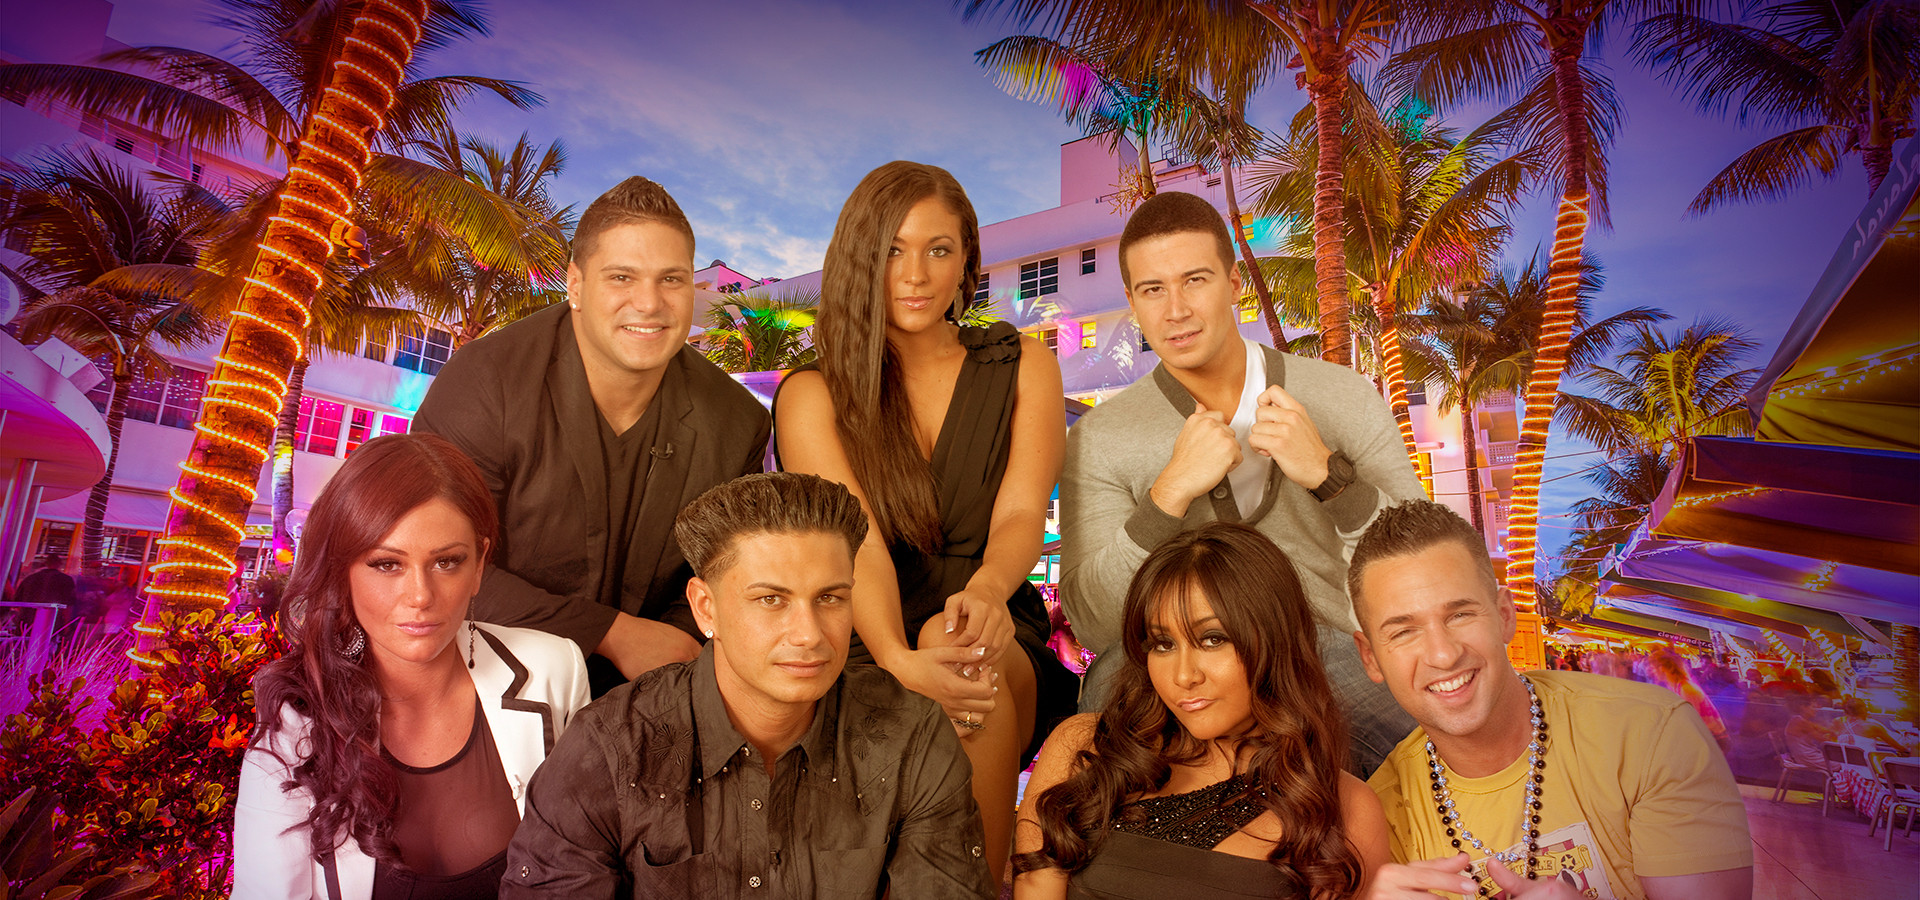 Jersey Shore Cast, Miami Nightlife, Hotspots